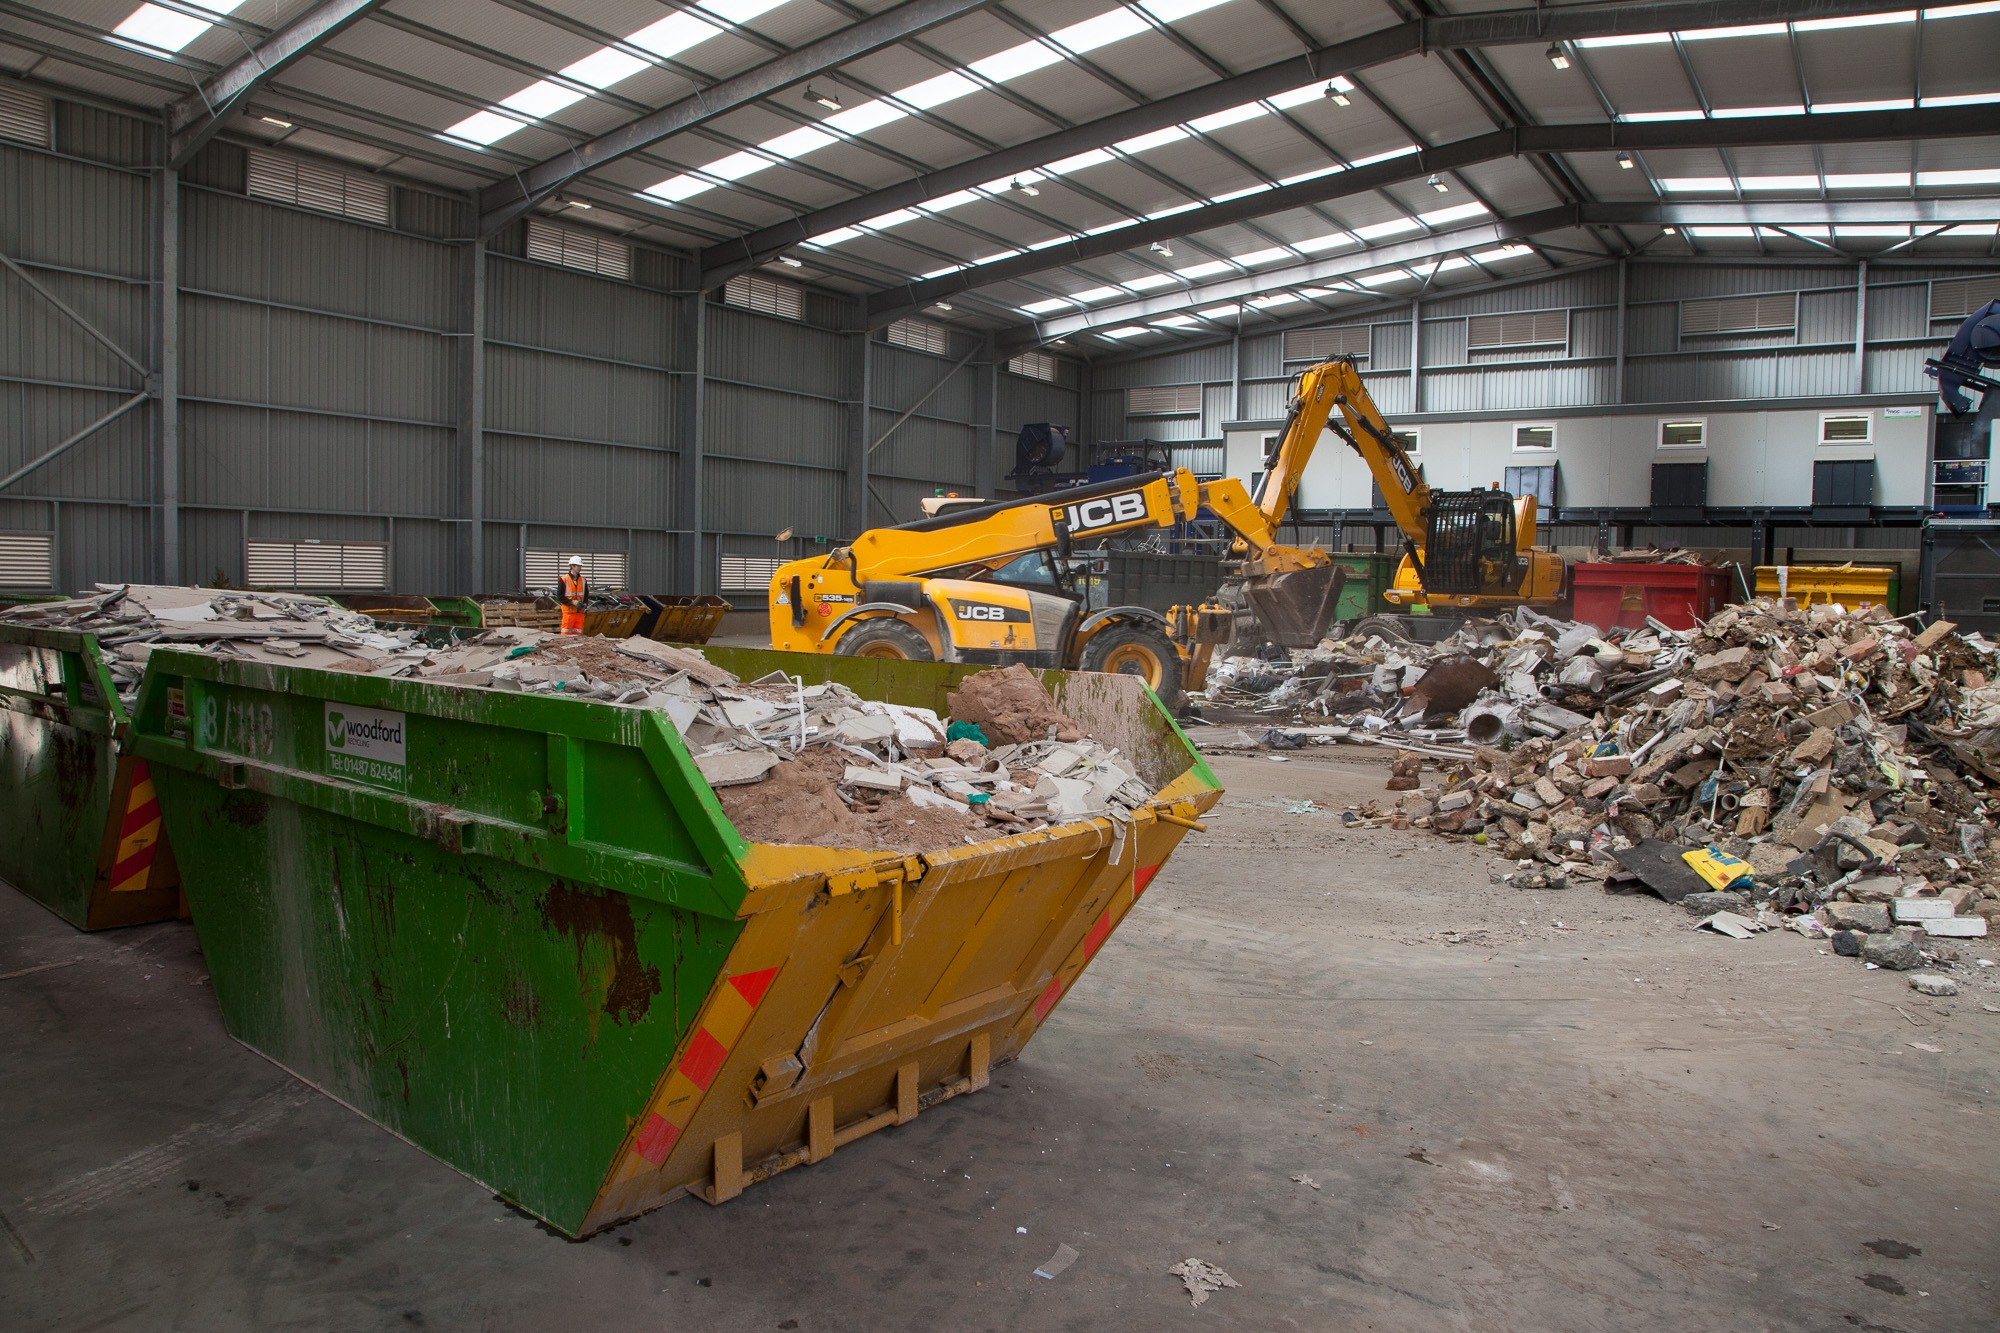 woodford-recycling-materials-recycling-facility